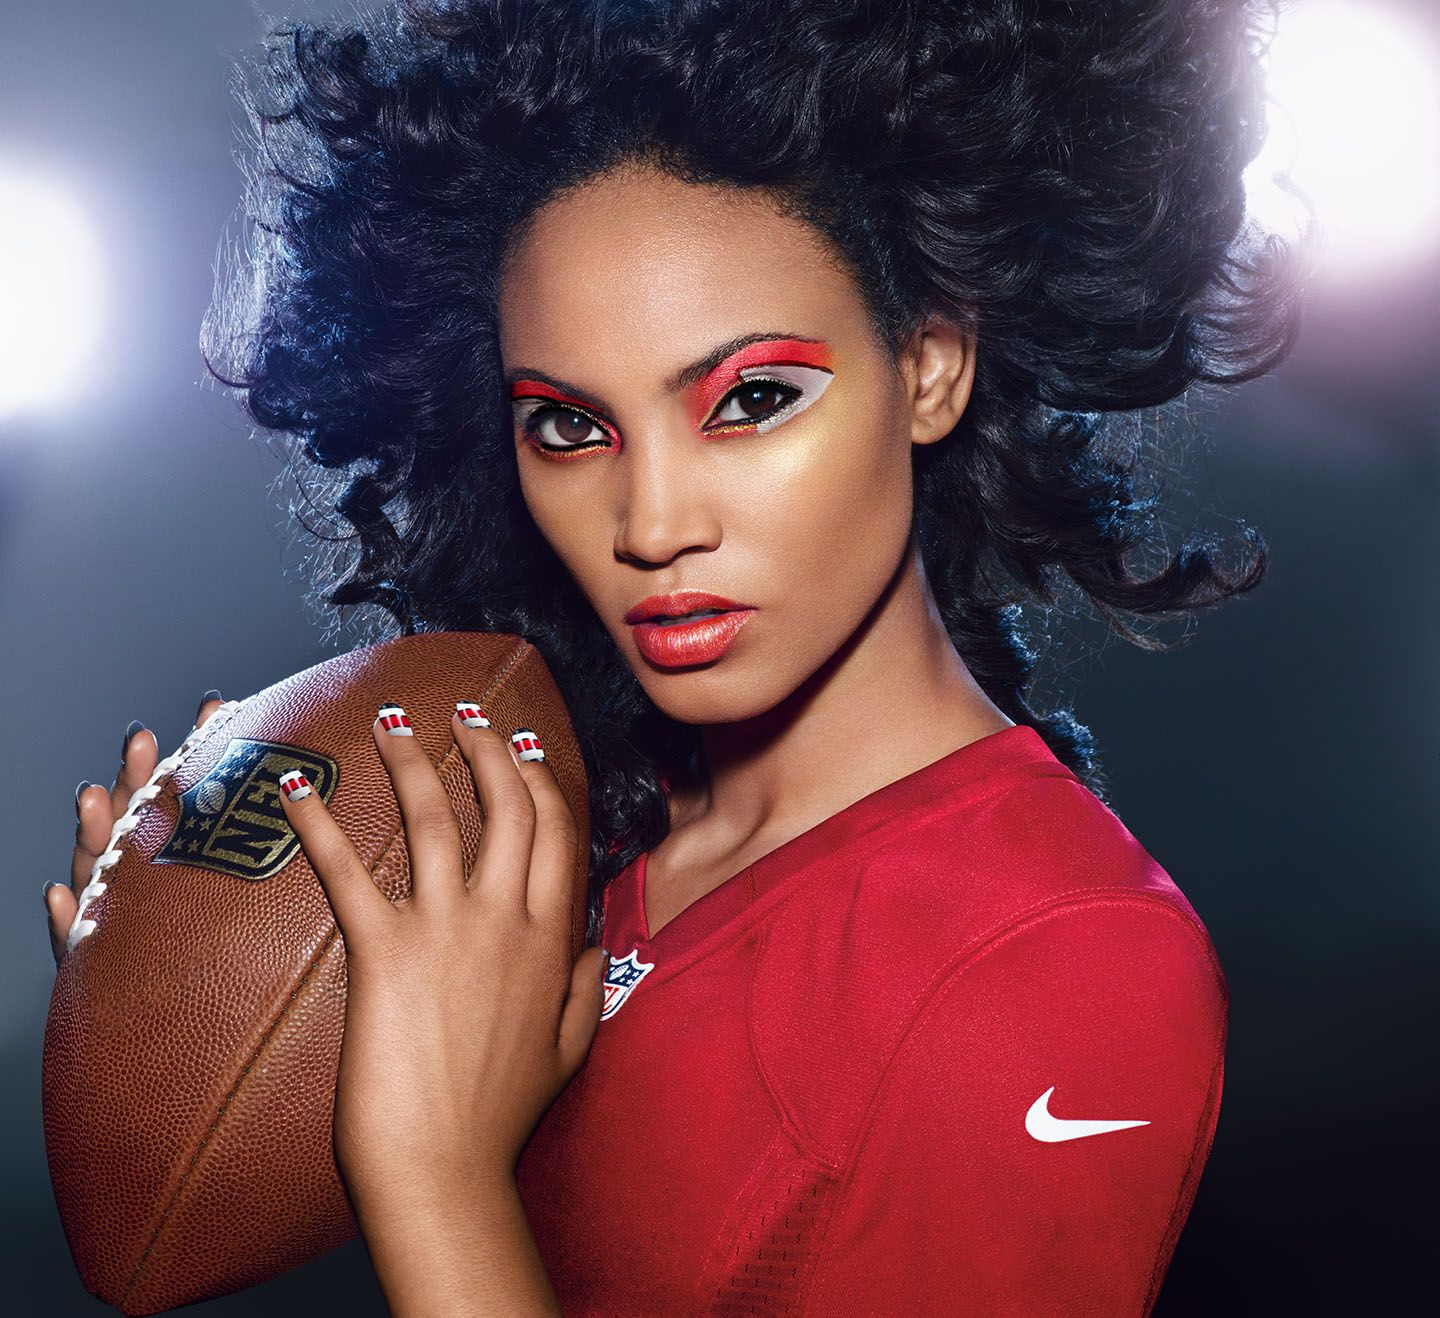 KANSAS CITY CHIEFS fans, get your Covergirl GAMEFACE on